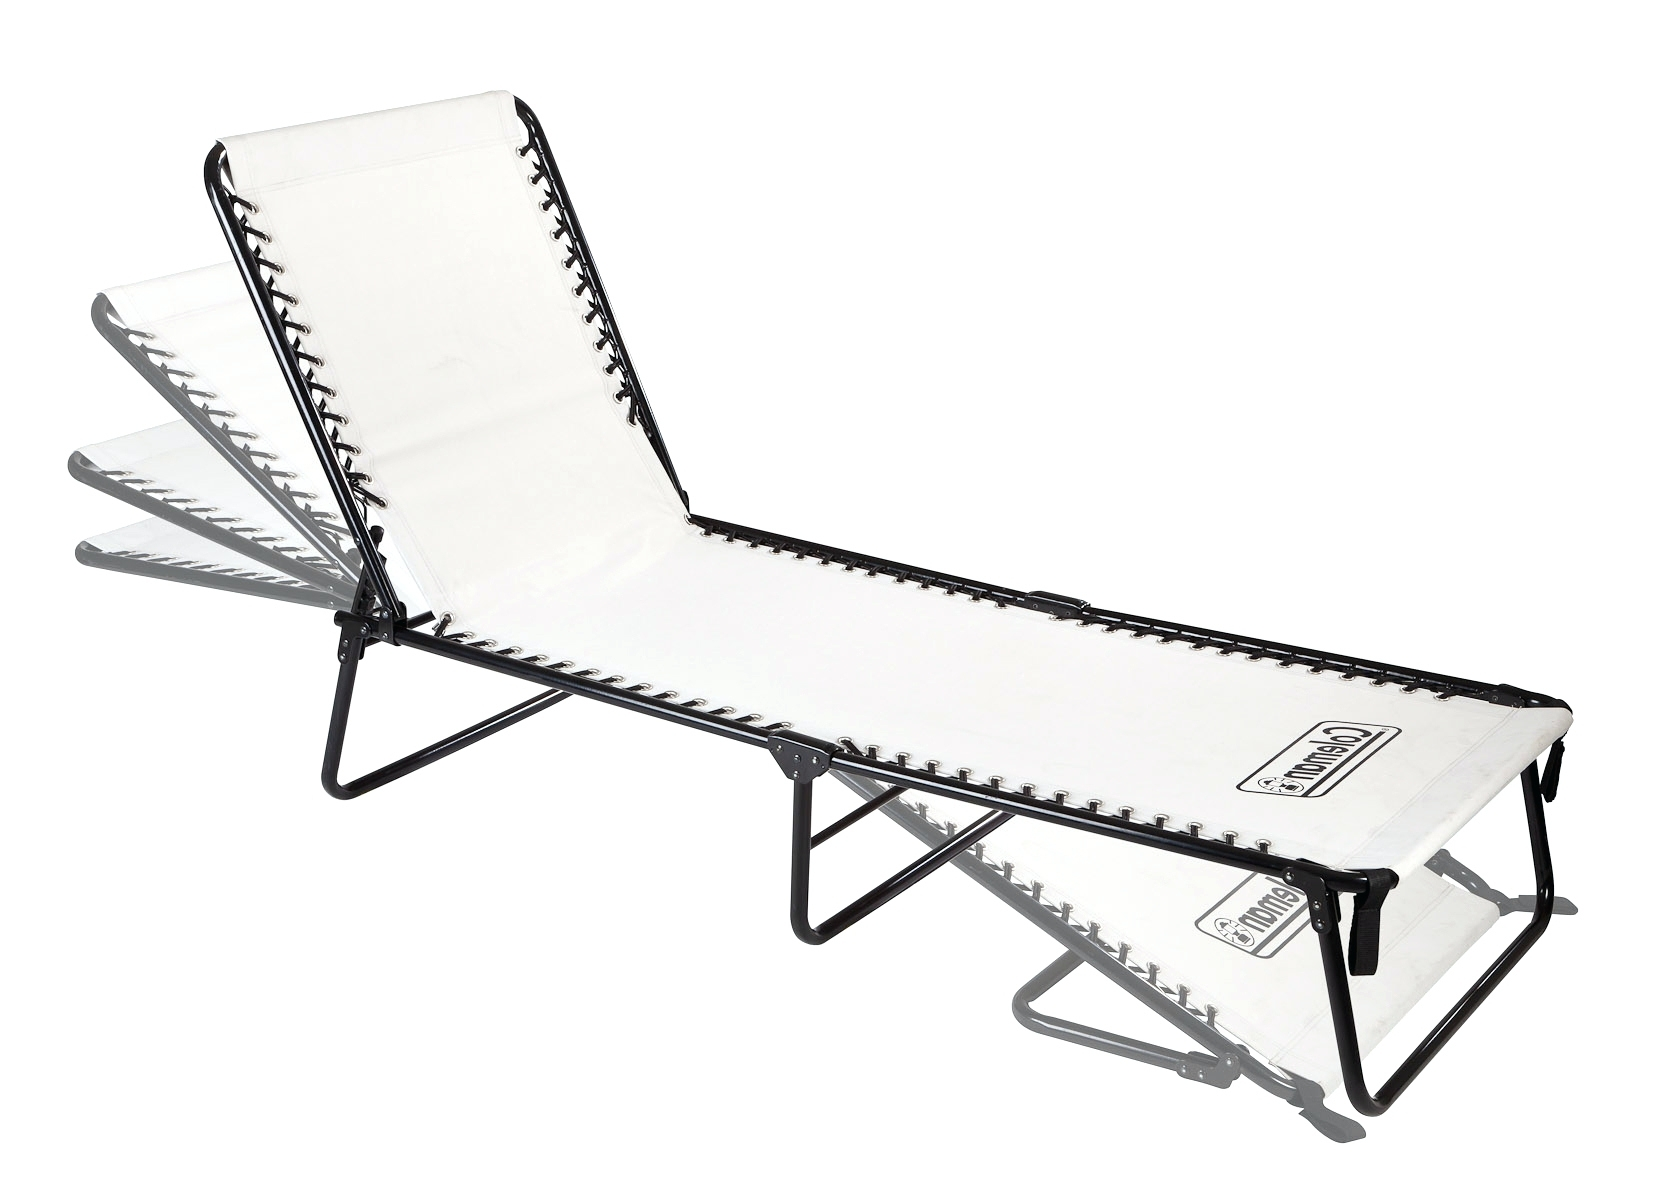 Folding Chaise Lounge Chairs Intended For Well Known Portable Chaise Lounge Chairs Outdoor • Lounge Chairs Ideas (View 14 of 15)